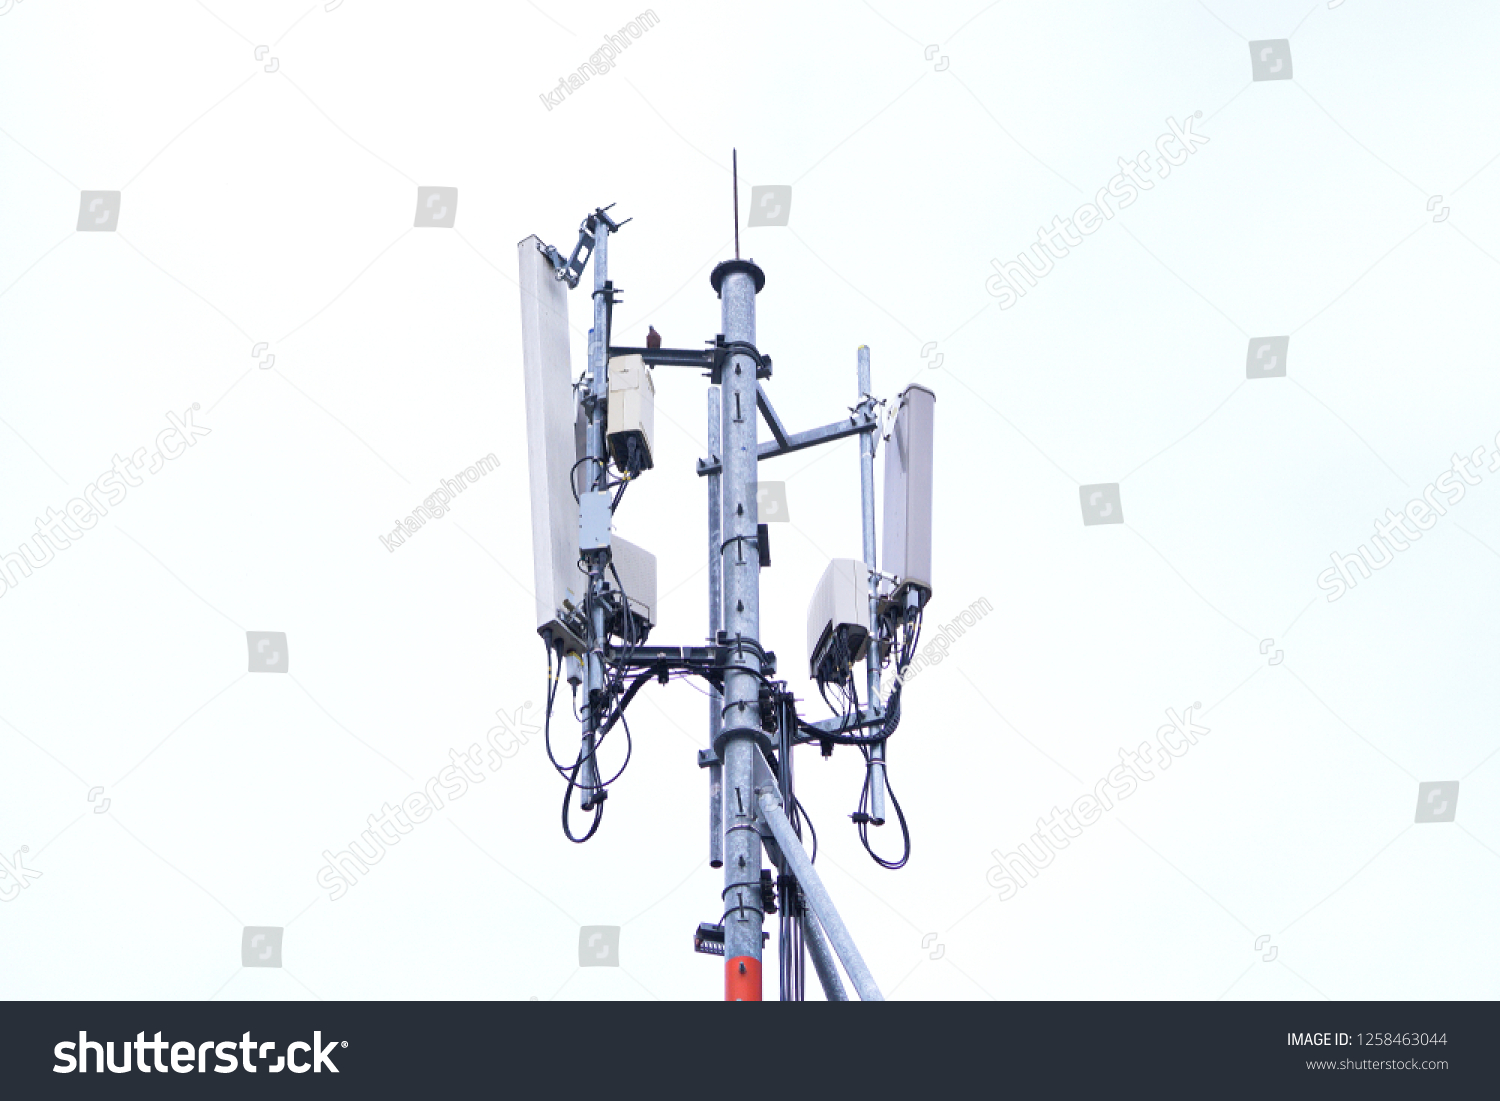 hight resolution of 3g 4g and 5g cell site base station or base transceiver station cell tower or telecommunication tower wireless communication antenna transmitter